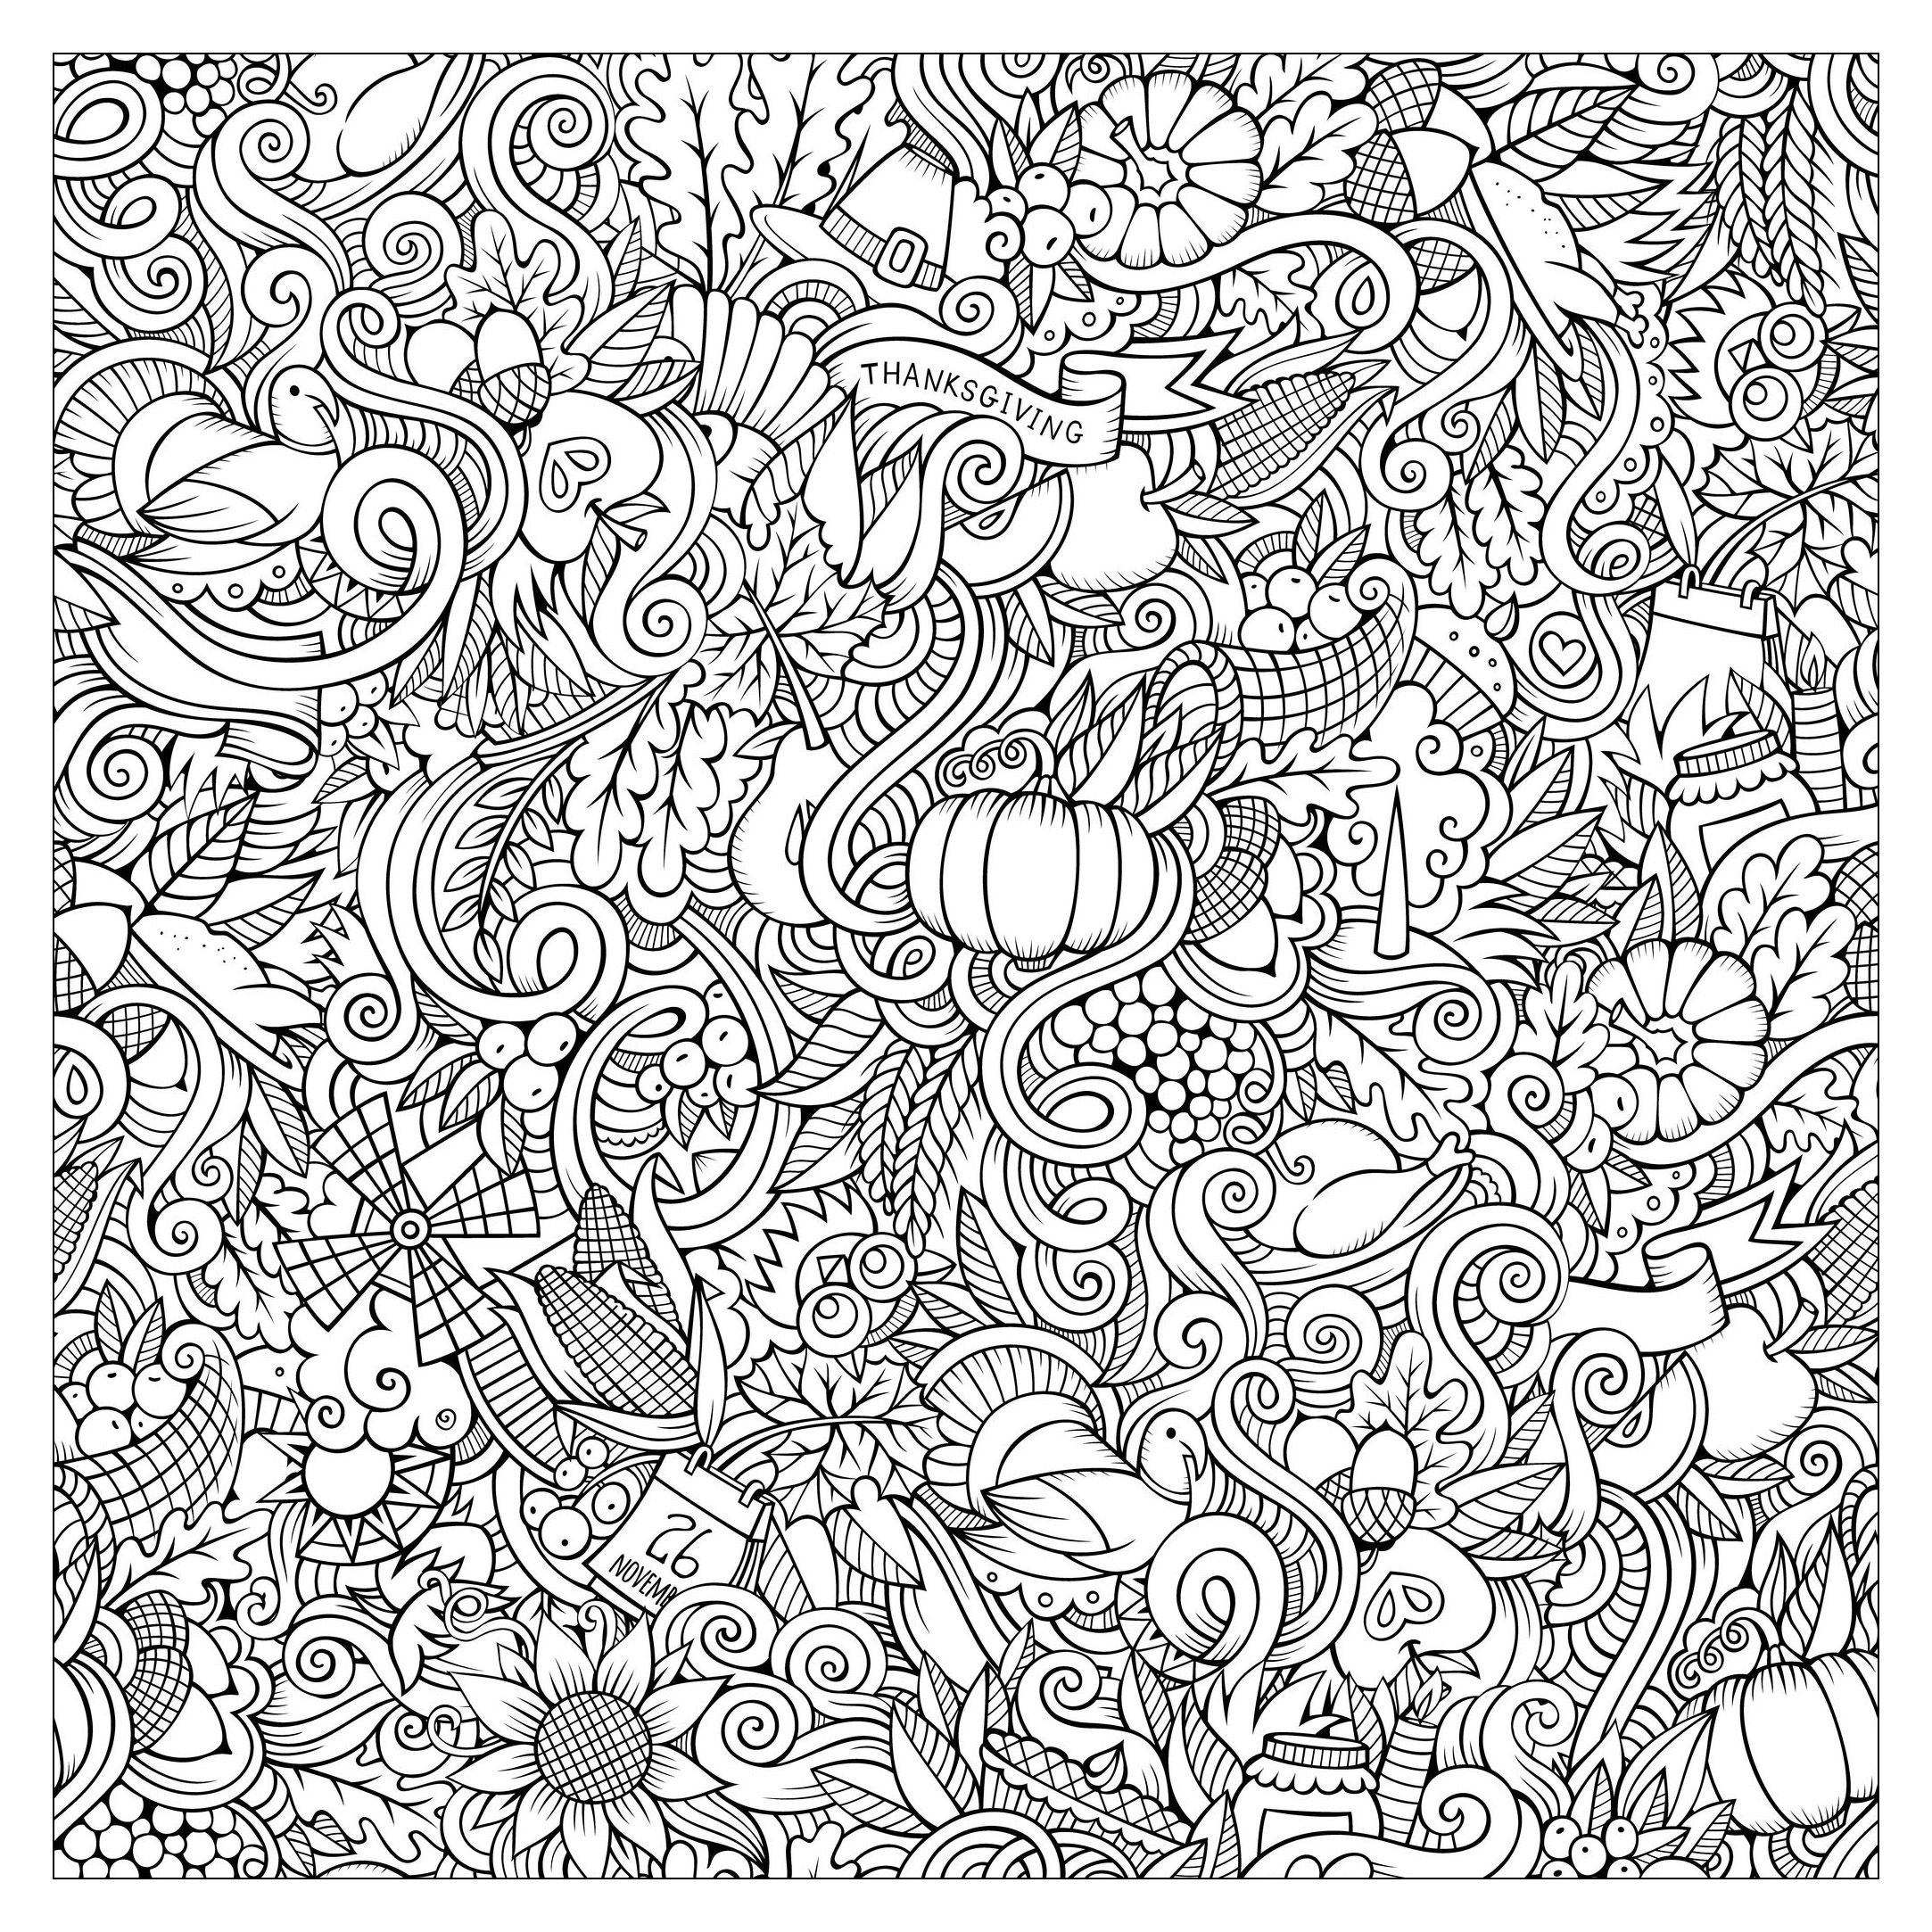 Hand-drawn doodles to color on the subject of thanksgiving & autumn ...